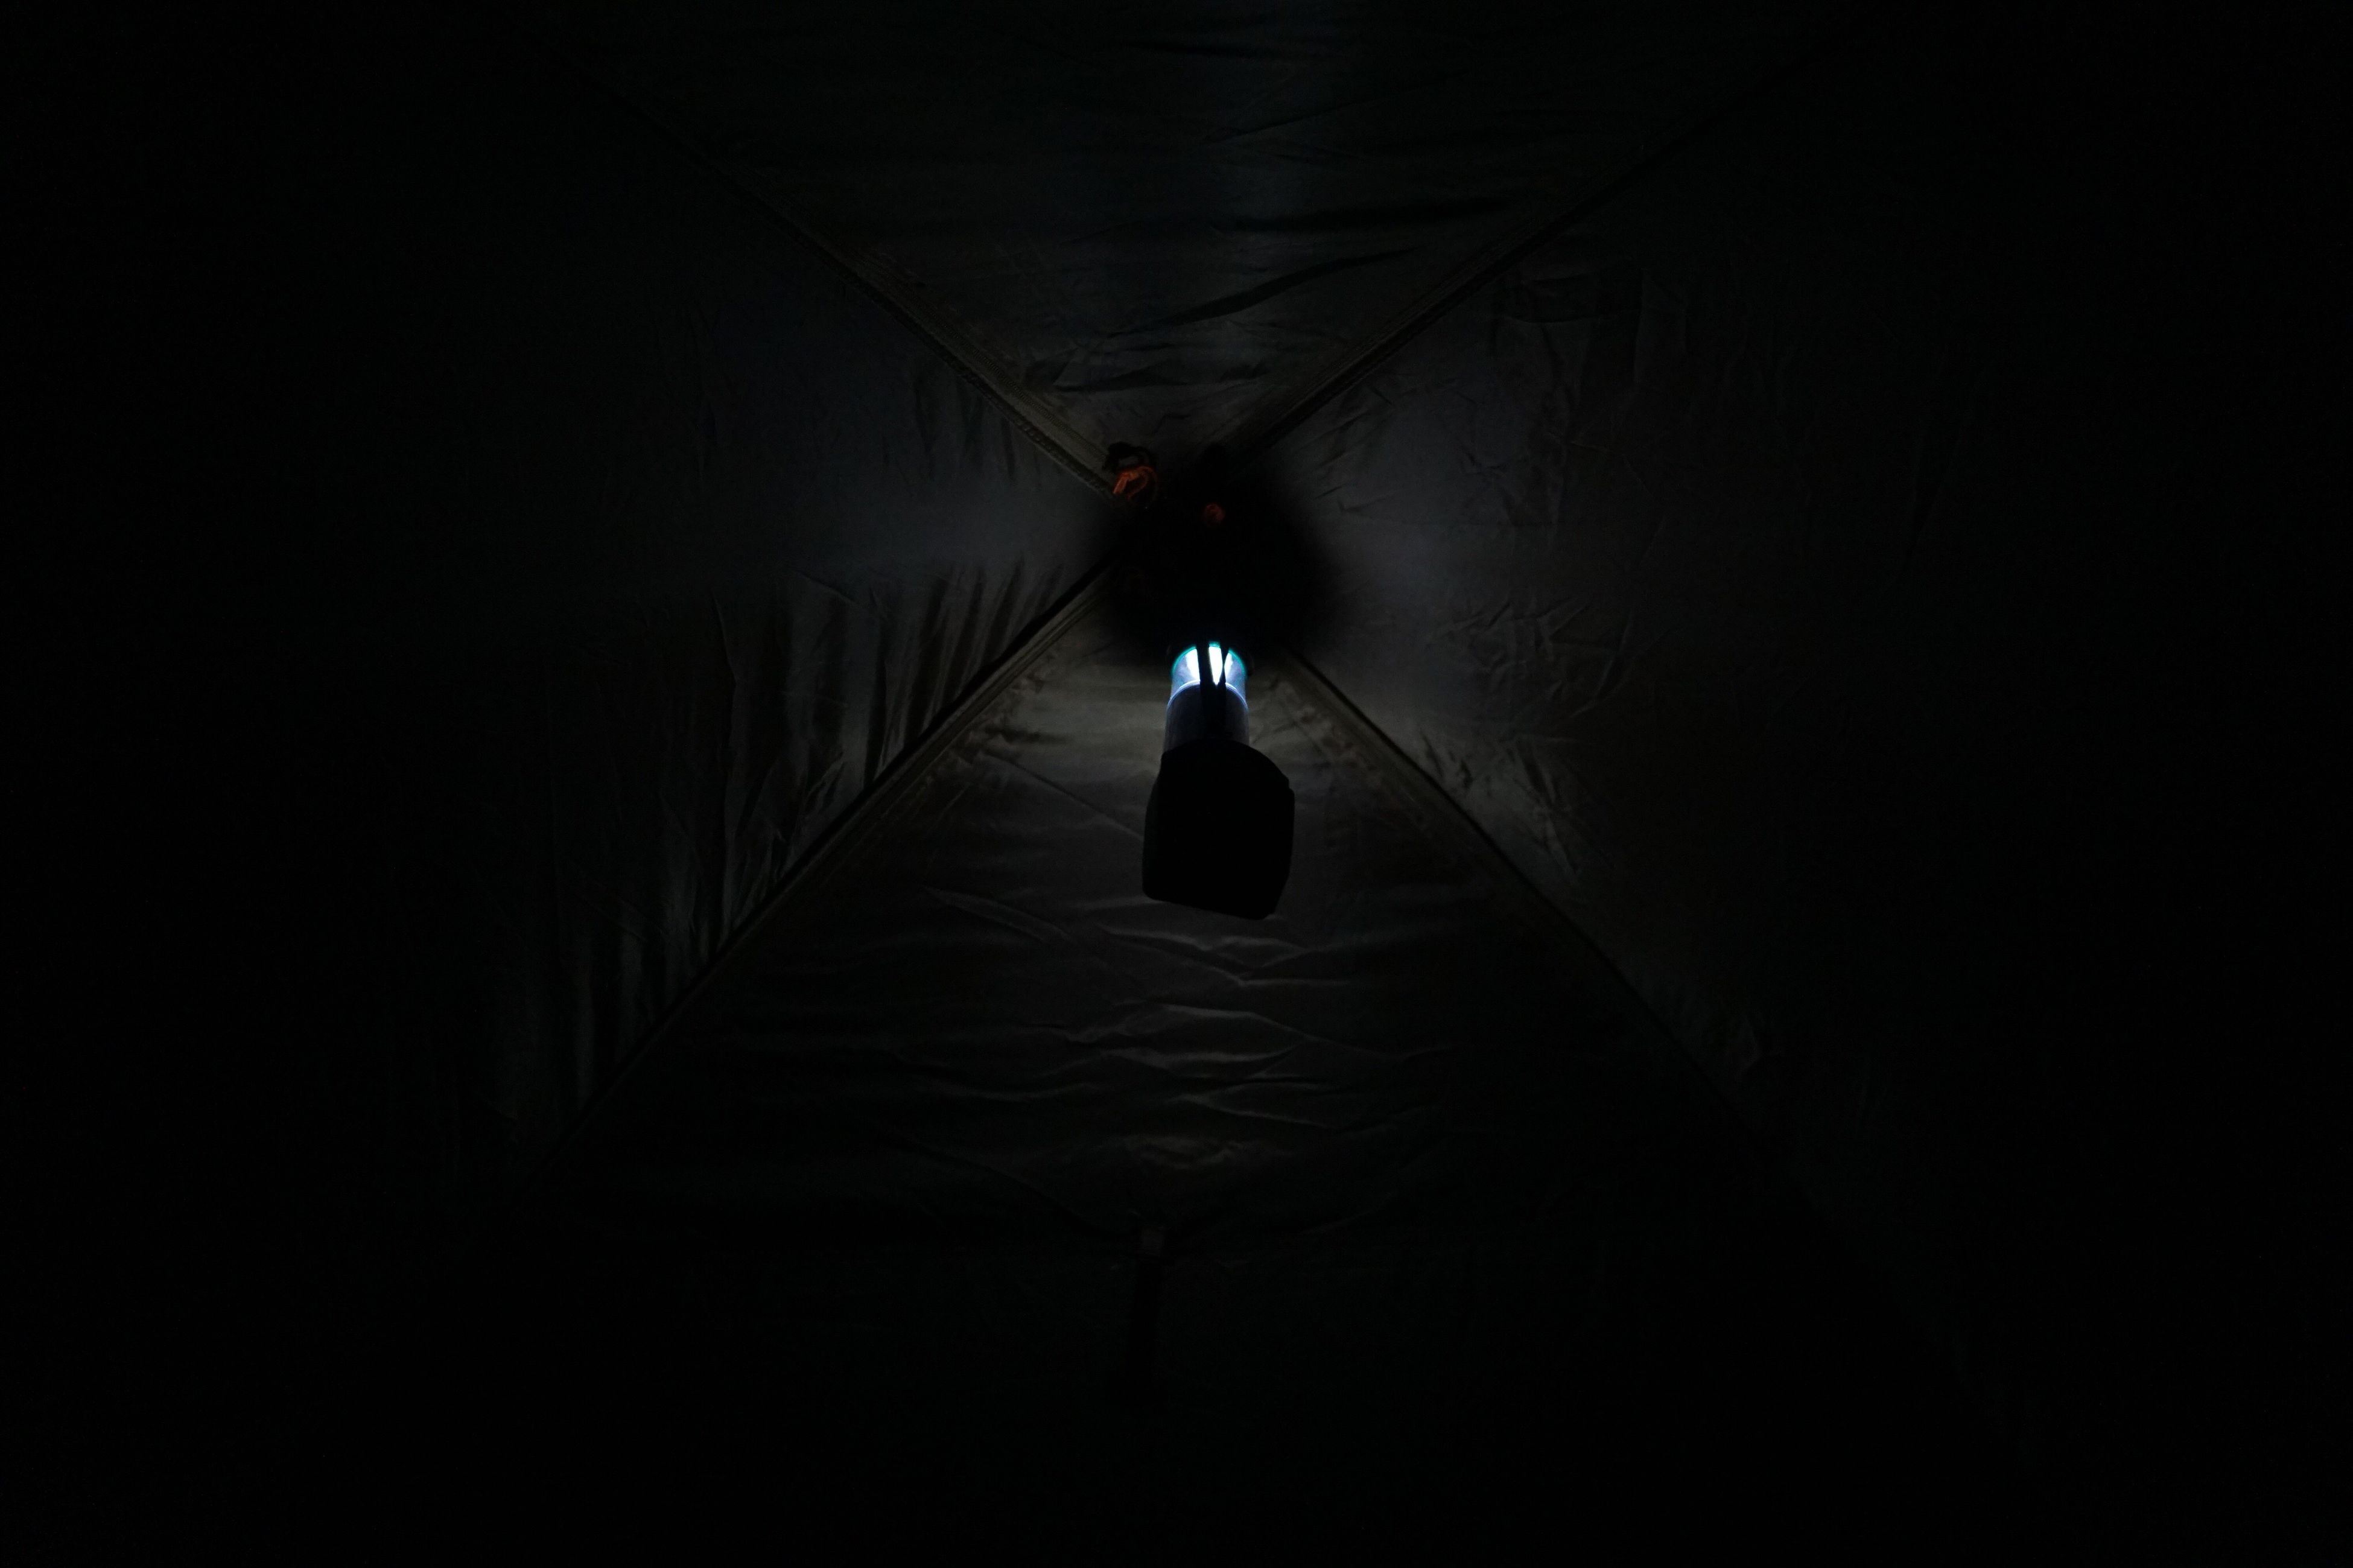 tunnel, mid distance, dark, the way forward, long, diminishing perspective, distant, light at the end of the tunnel, tranquility